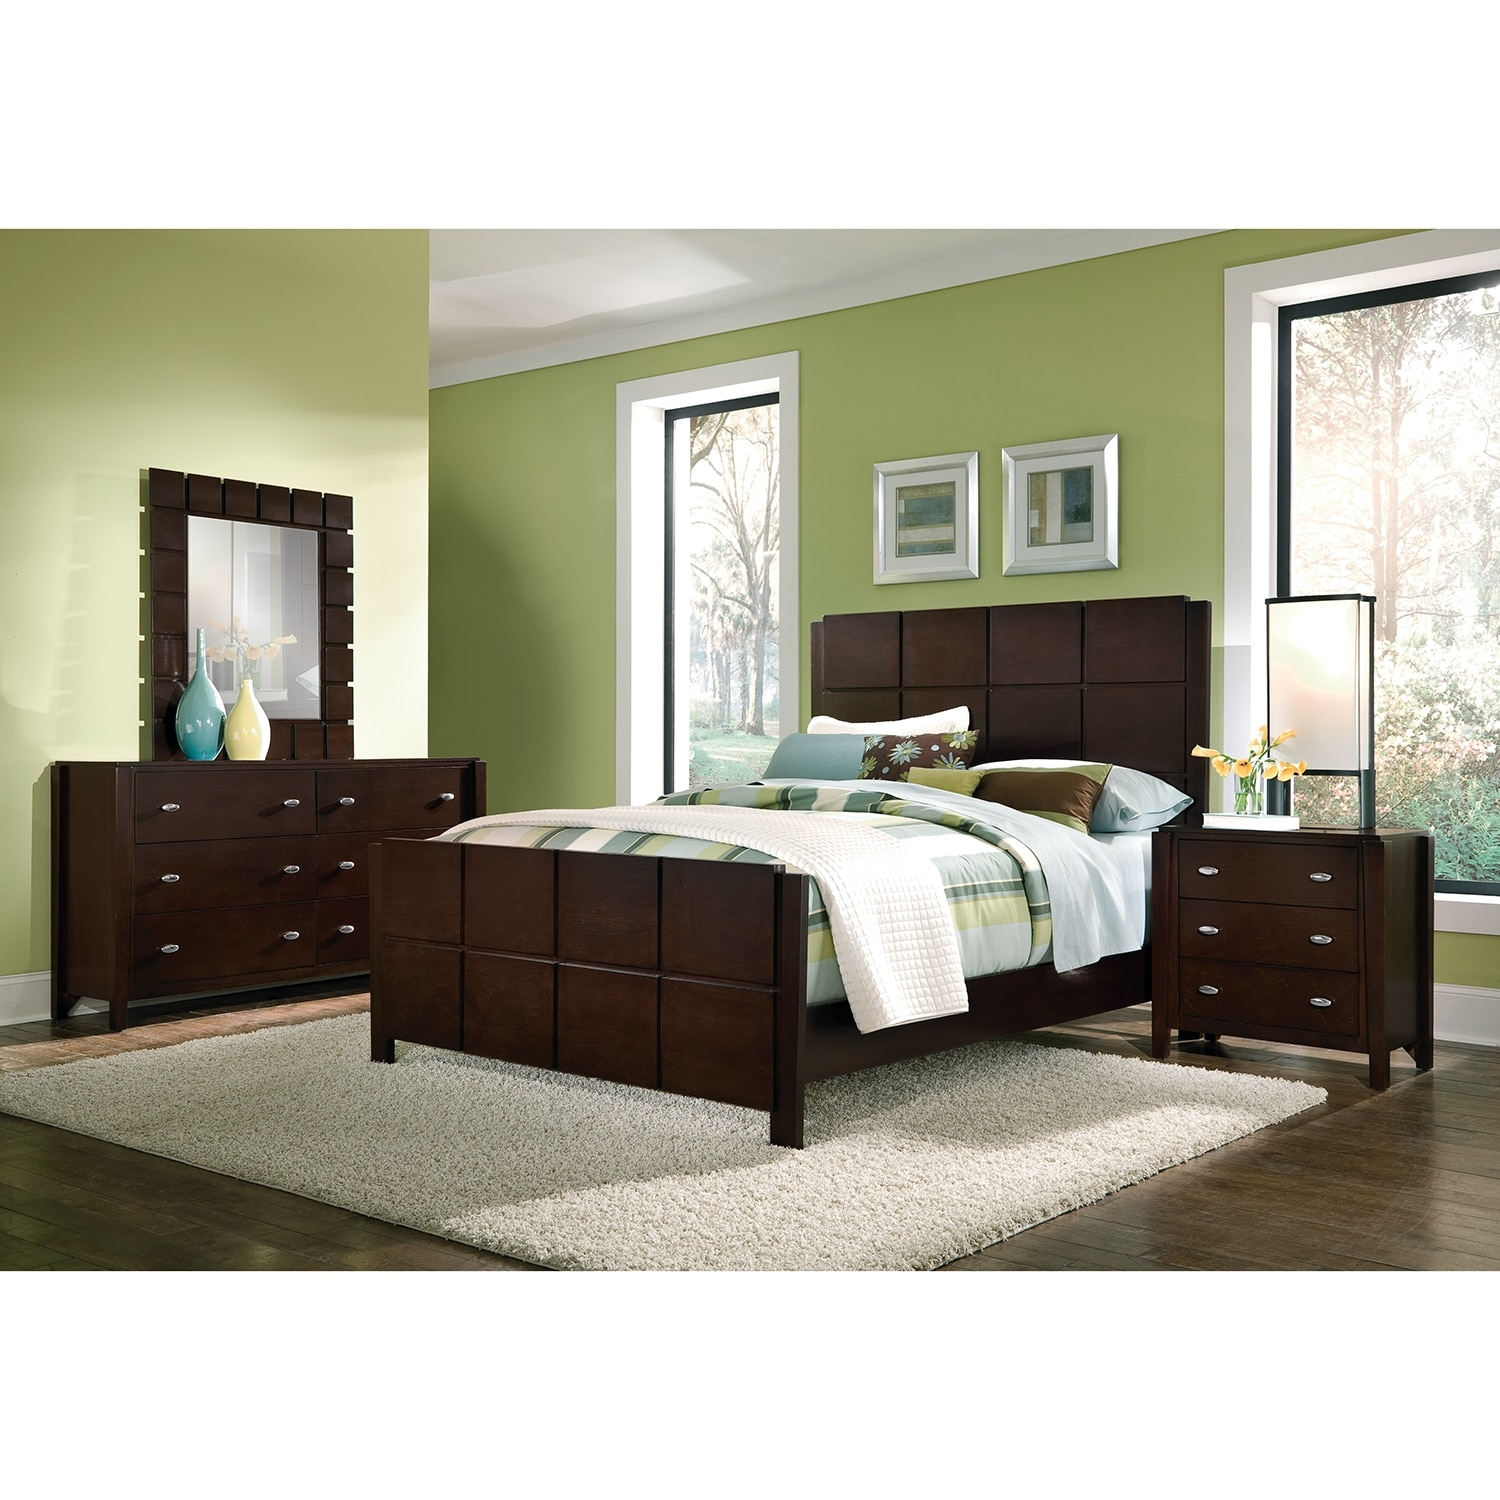 shop bedroom furniture american signature furniture 14008 | 293455 fit inside 7c320 320 composite to center center 7c320 320 background color white